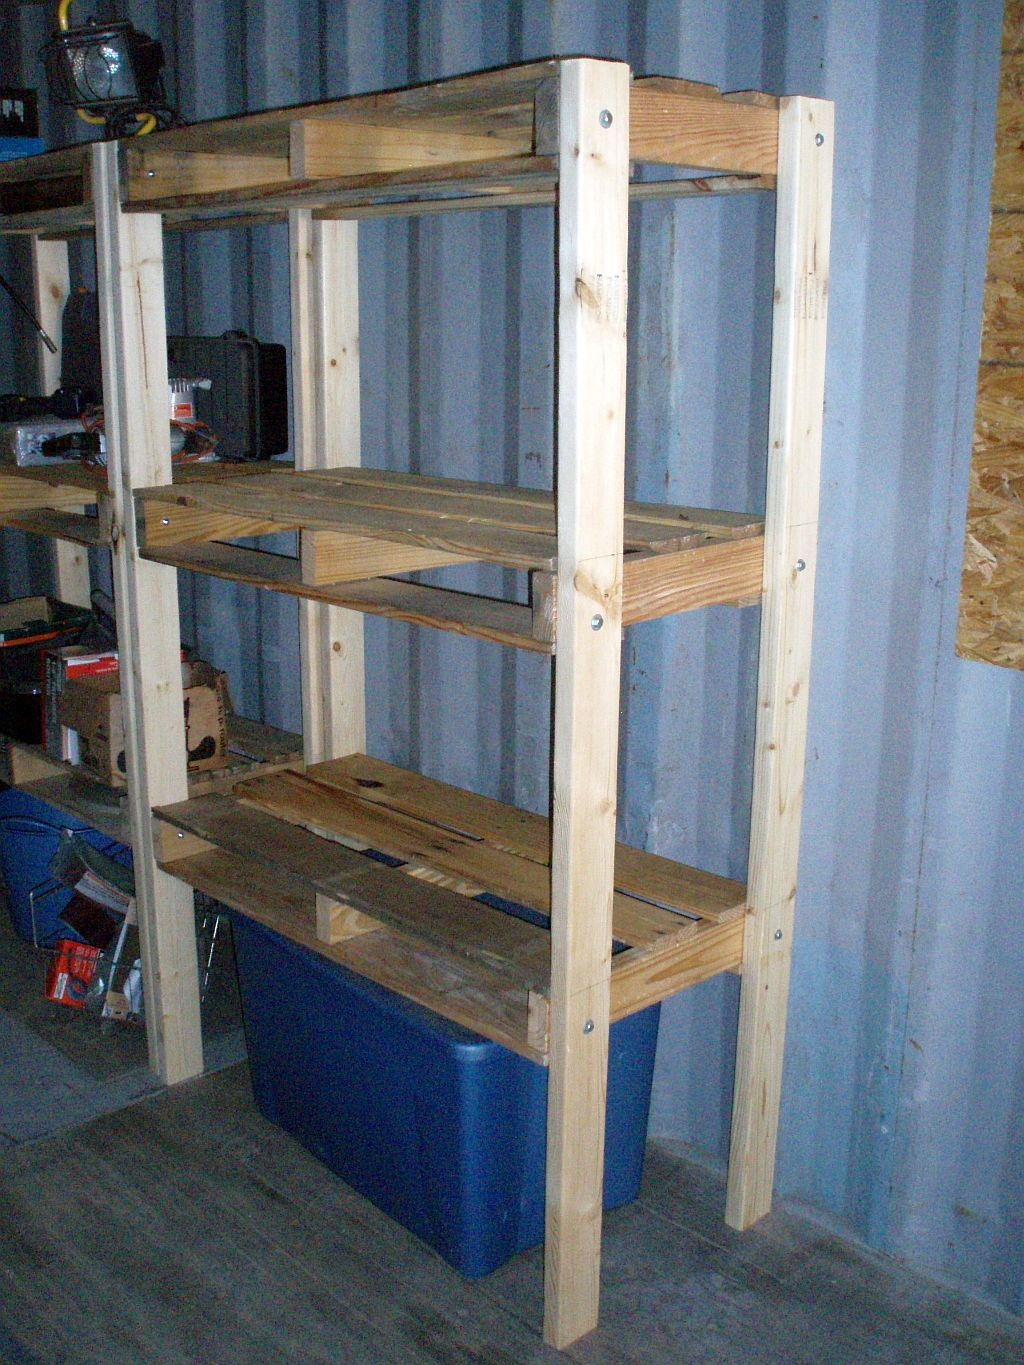 Shelves Made From Pallets Tall Pallet Shelfgreat For Storage In A Garageor You Could